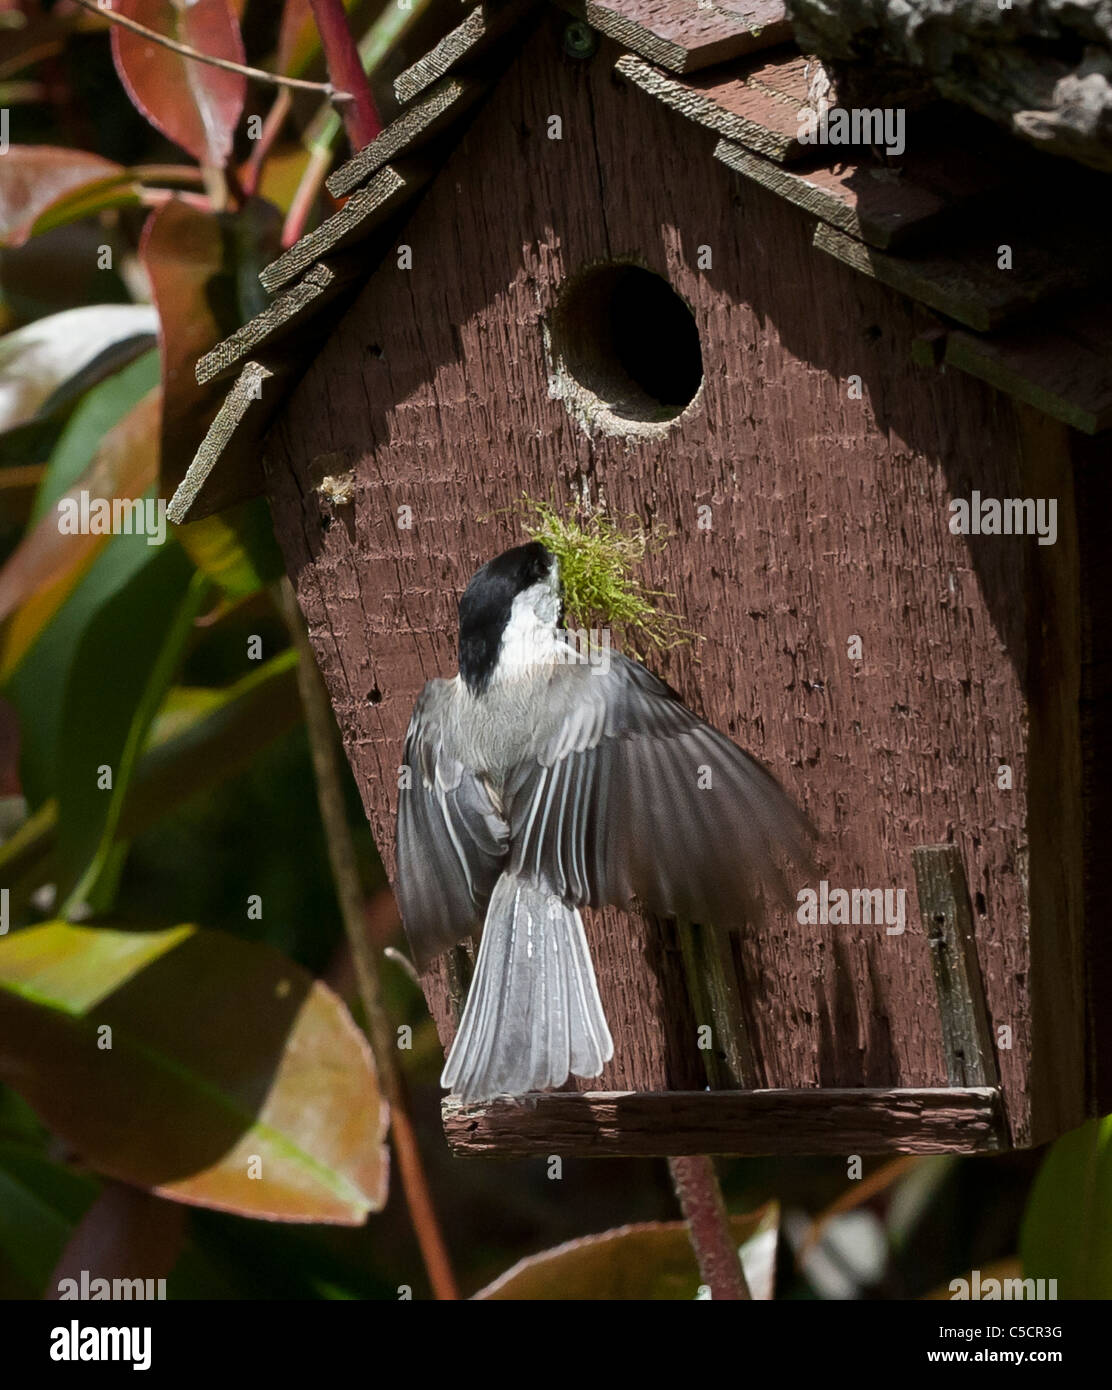 blackcap chickadee flying toward red birdhouse carrying nest building materials - Stock Image